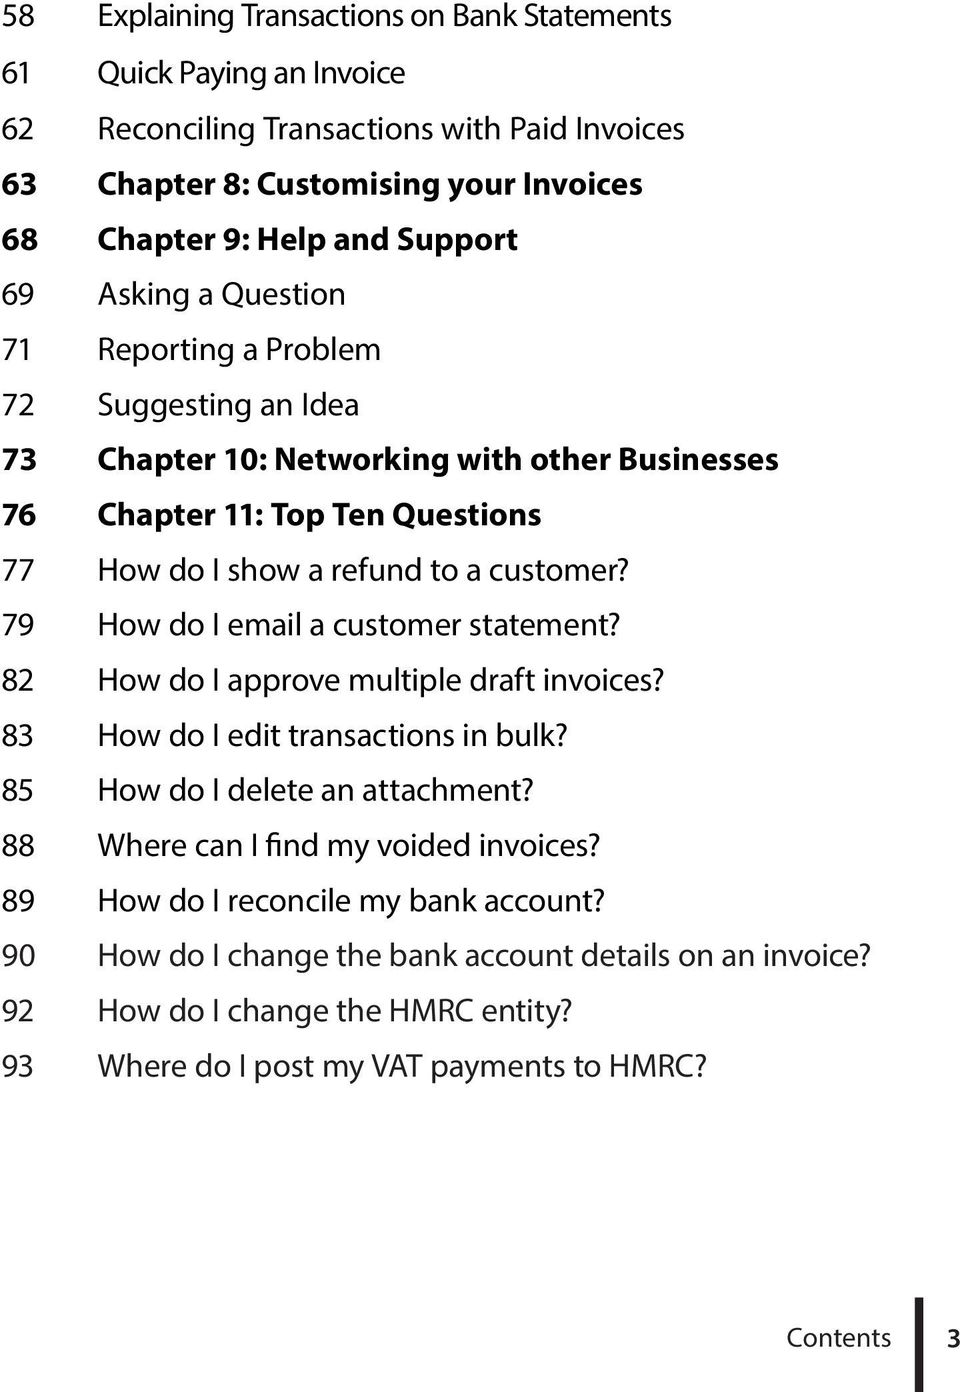 79 How do I email a customer statement? 82 How do I approve multiple draft invoices? 83 How do I edit transactions in bulk? 85 How do I delete an attachment?